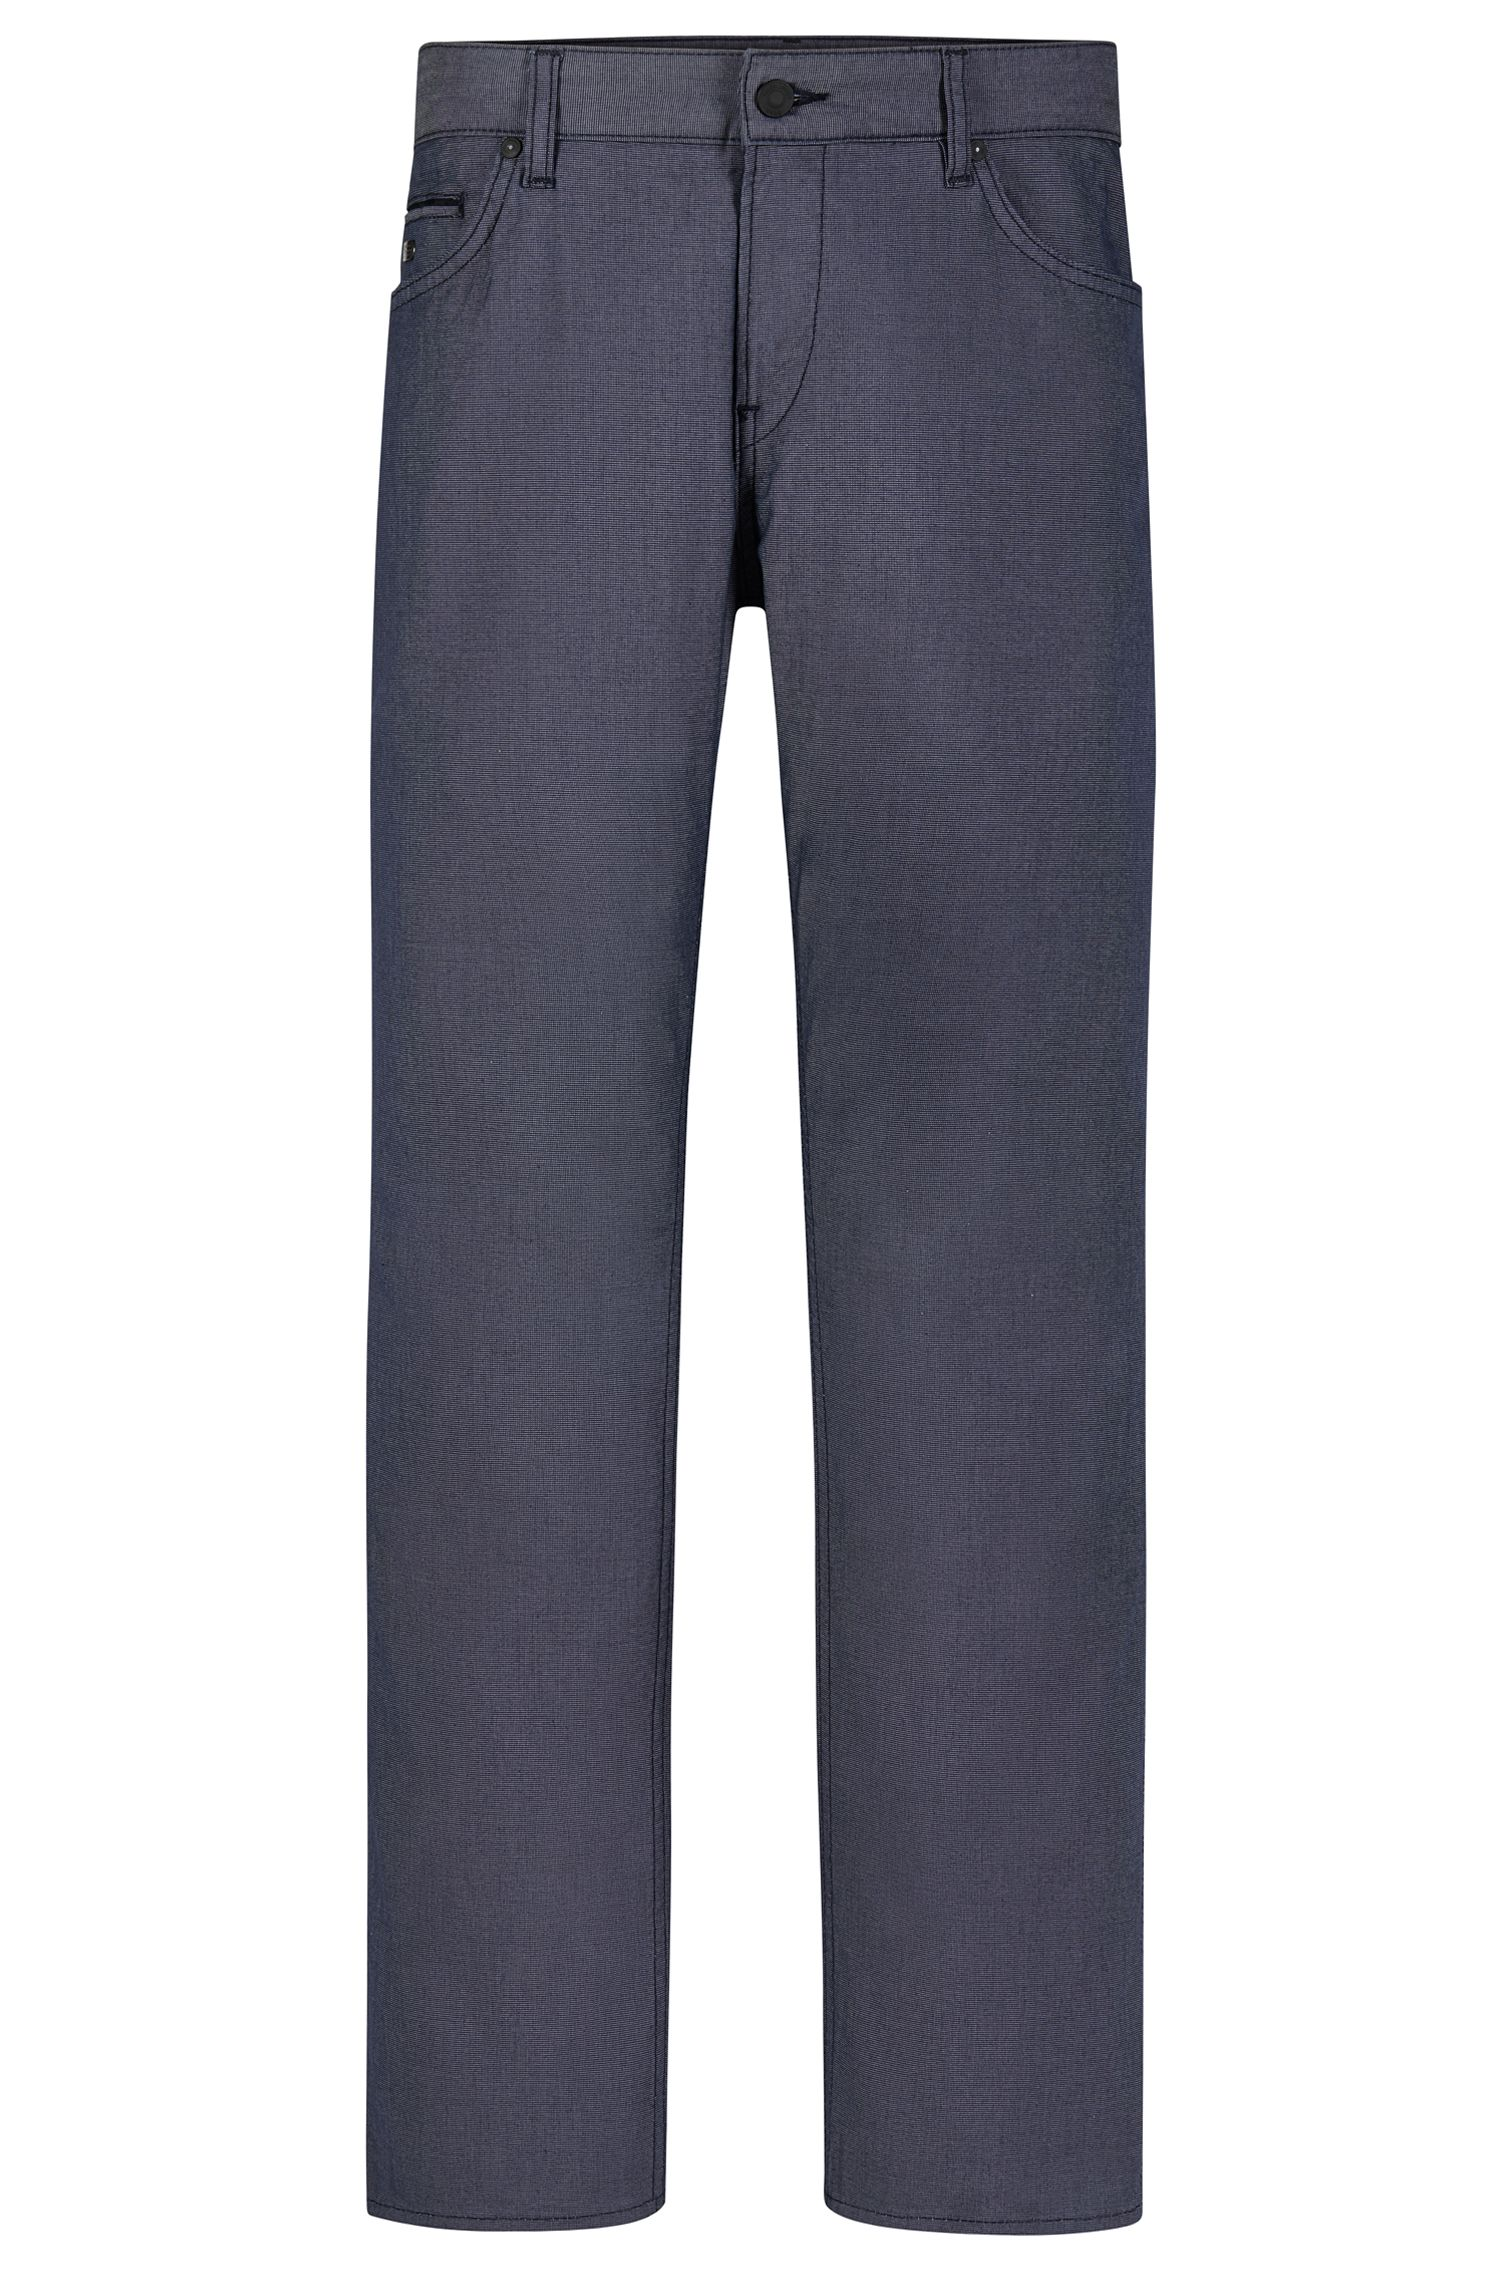 'C-Delaware2-3-20' | Slim fit, Stretch Cotton Jeans